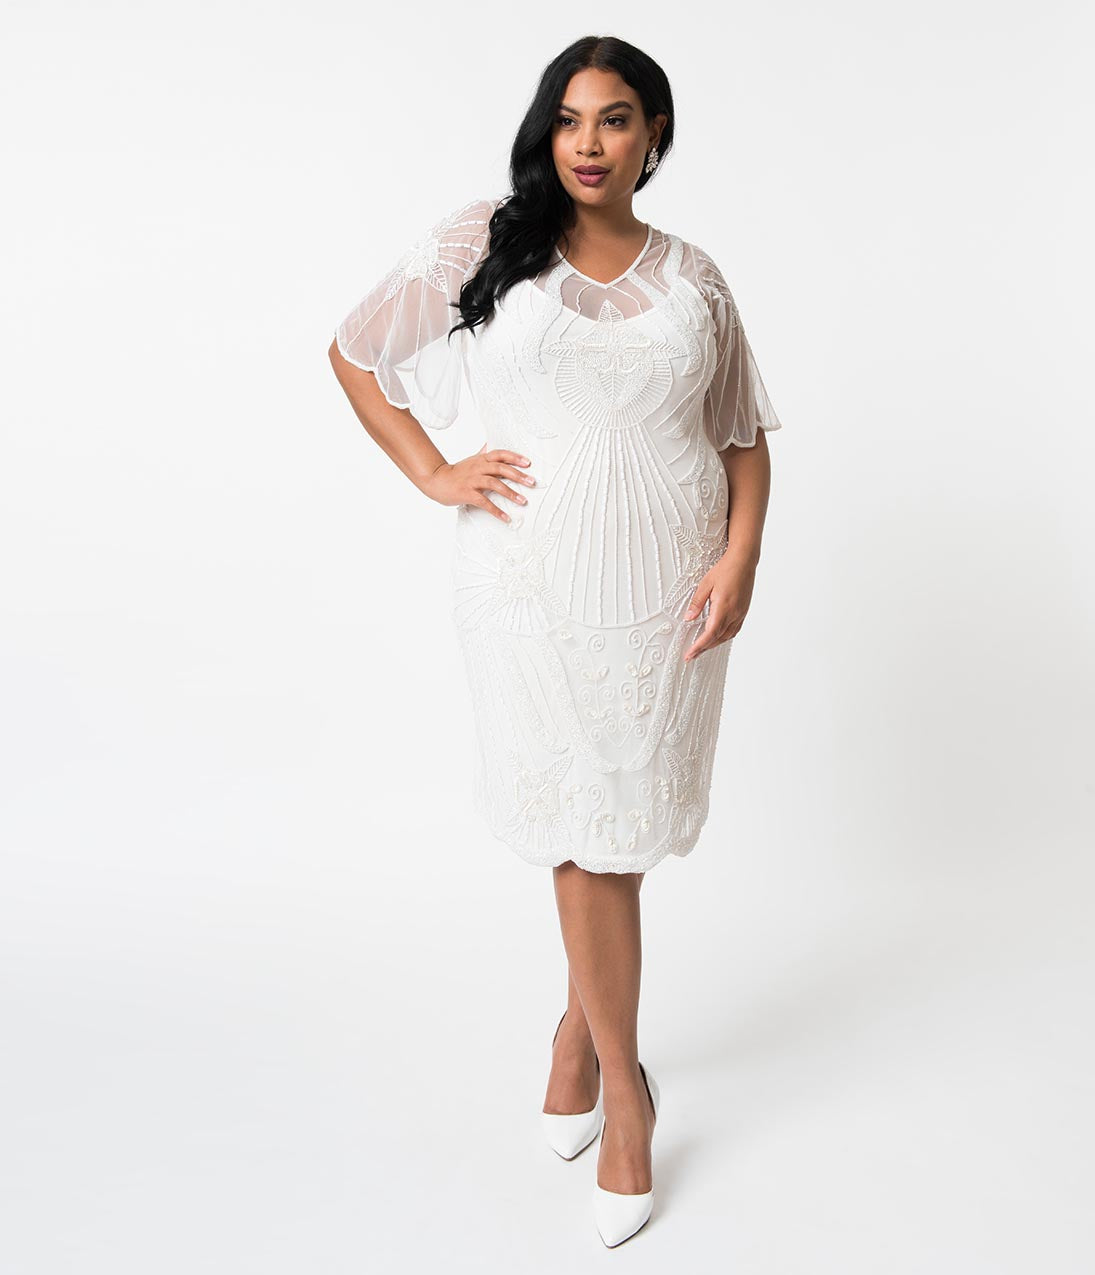 Vintage Style Wedding Dresses, Vintage Inspired Wedding Gowns Plus Size 1920S Style White Beaded Butterfly Short Sleeve Kate Cocktail Dress $82.00 AT vintagedancer.com